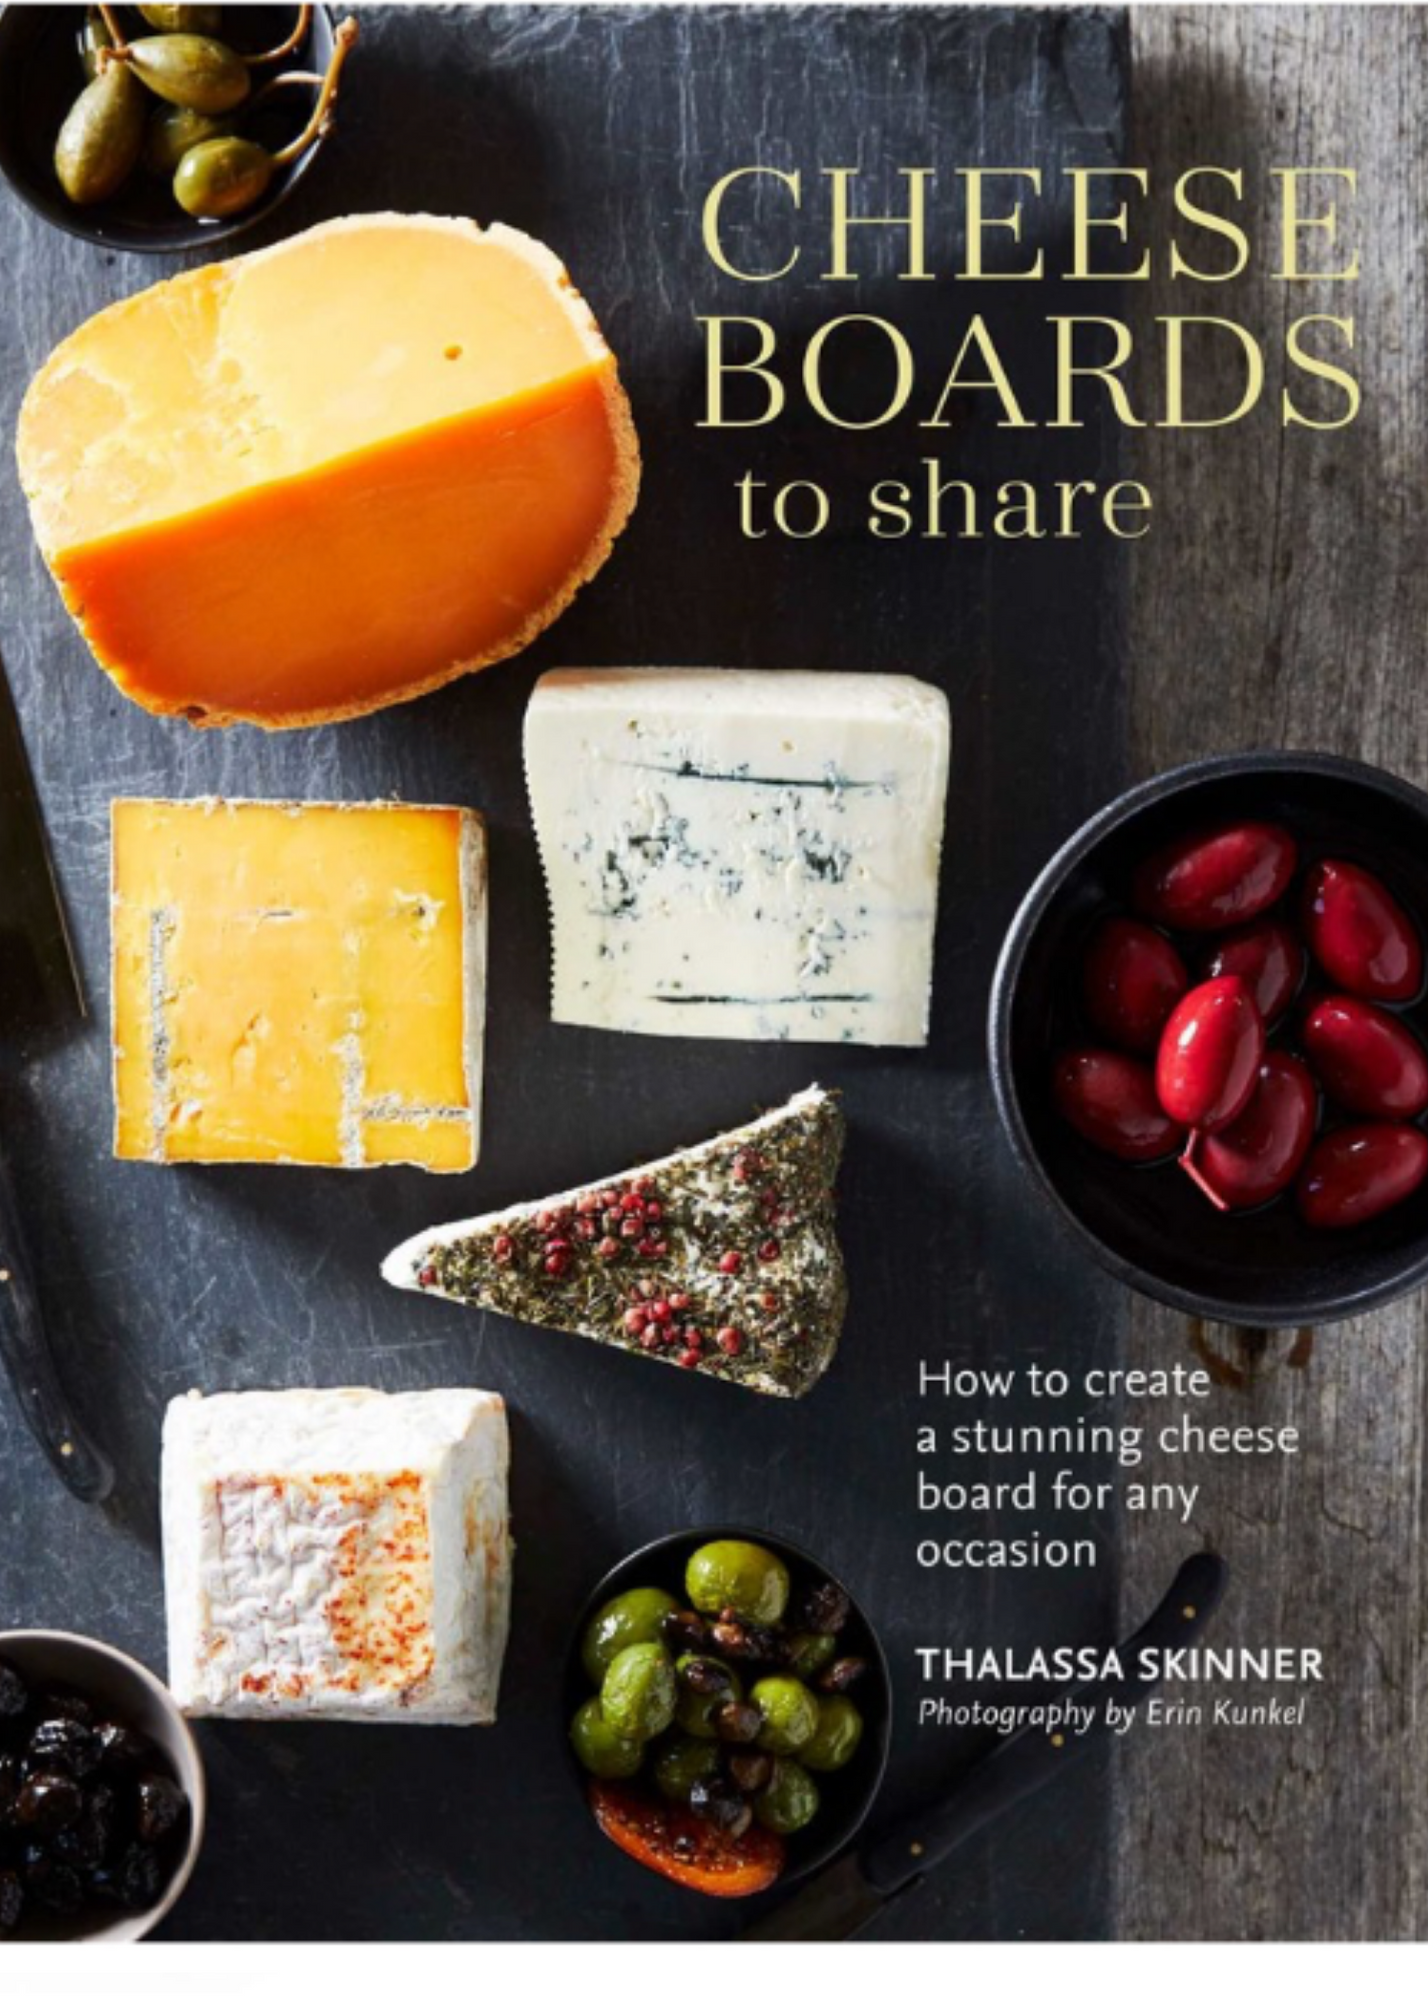 Book - CHEESE BOARDS to share